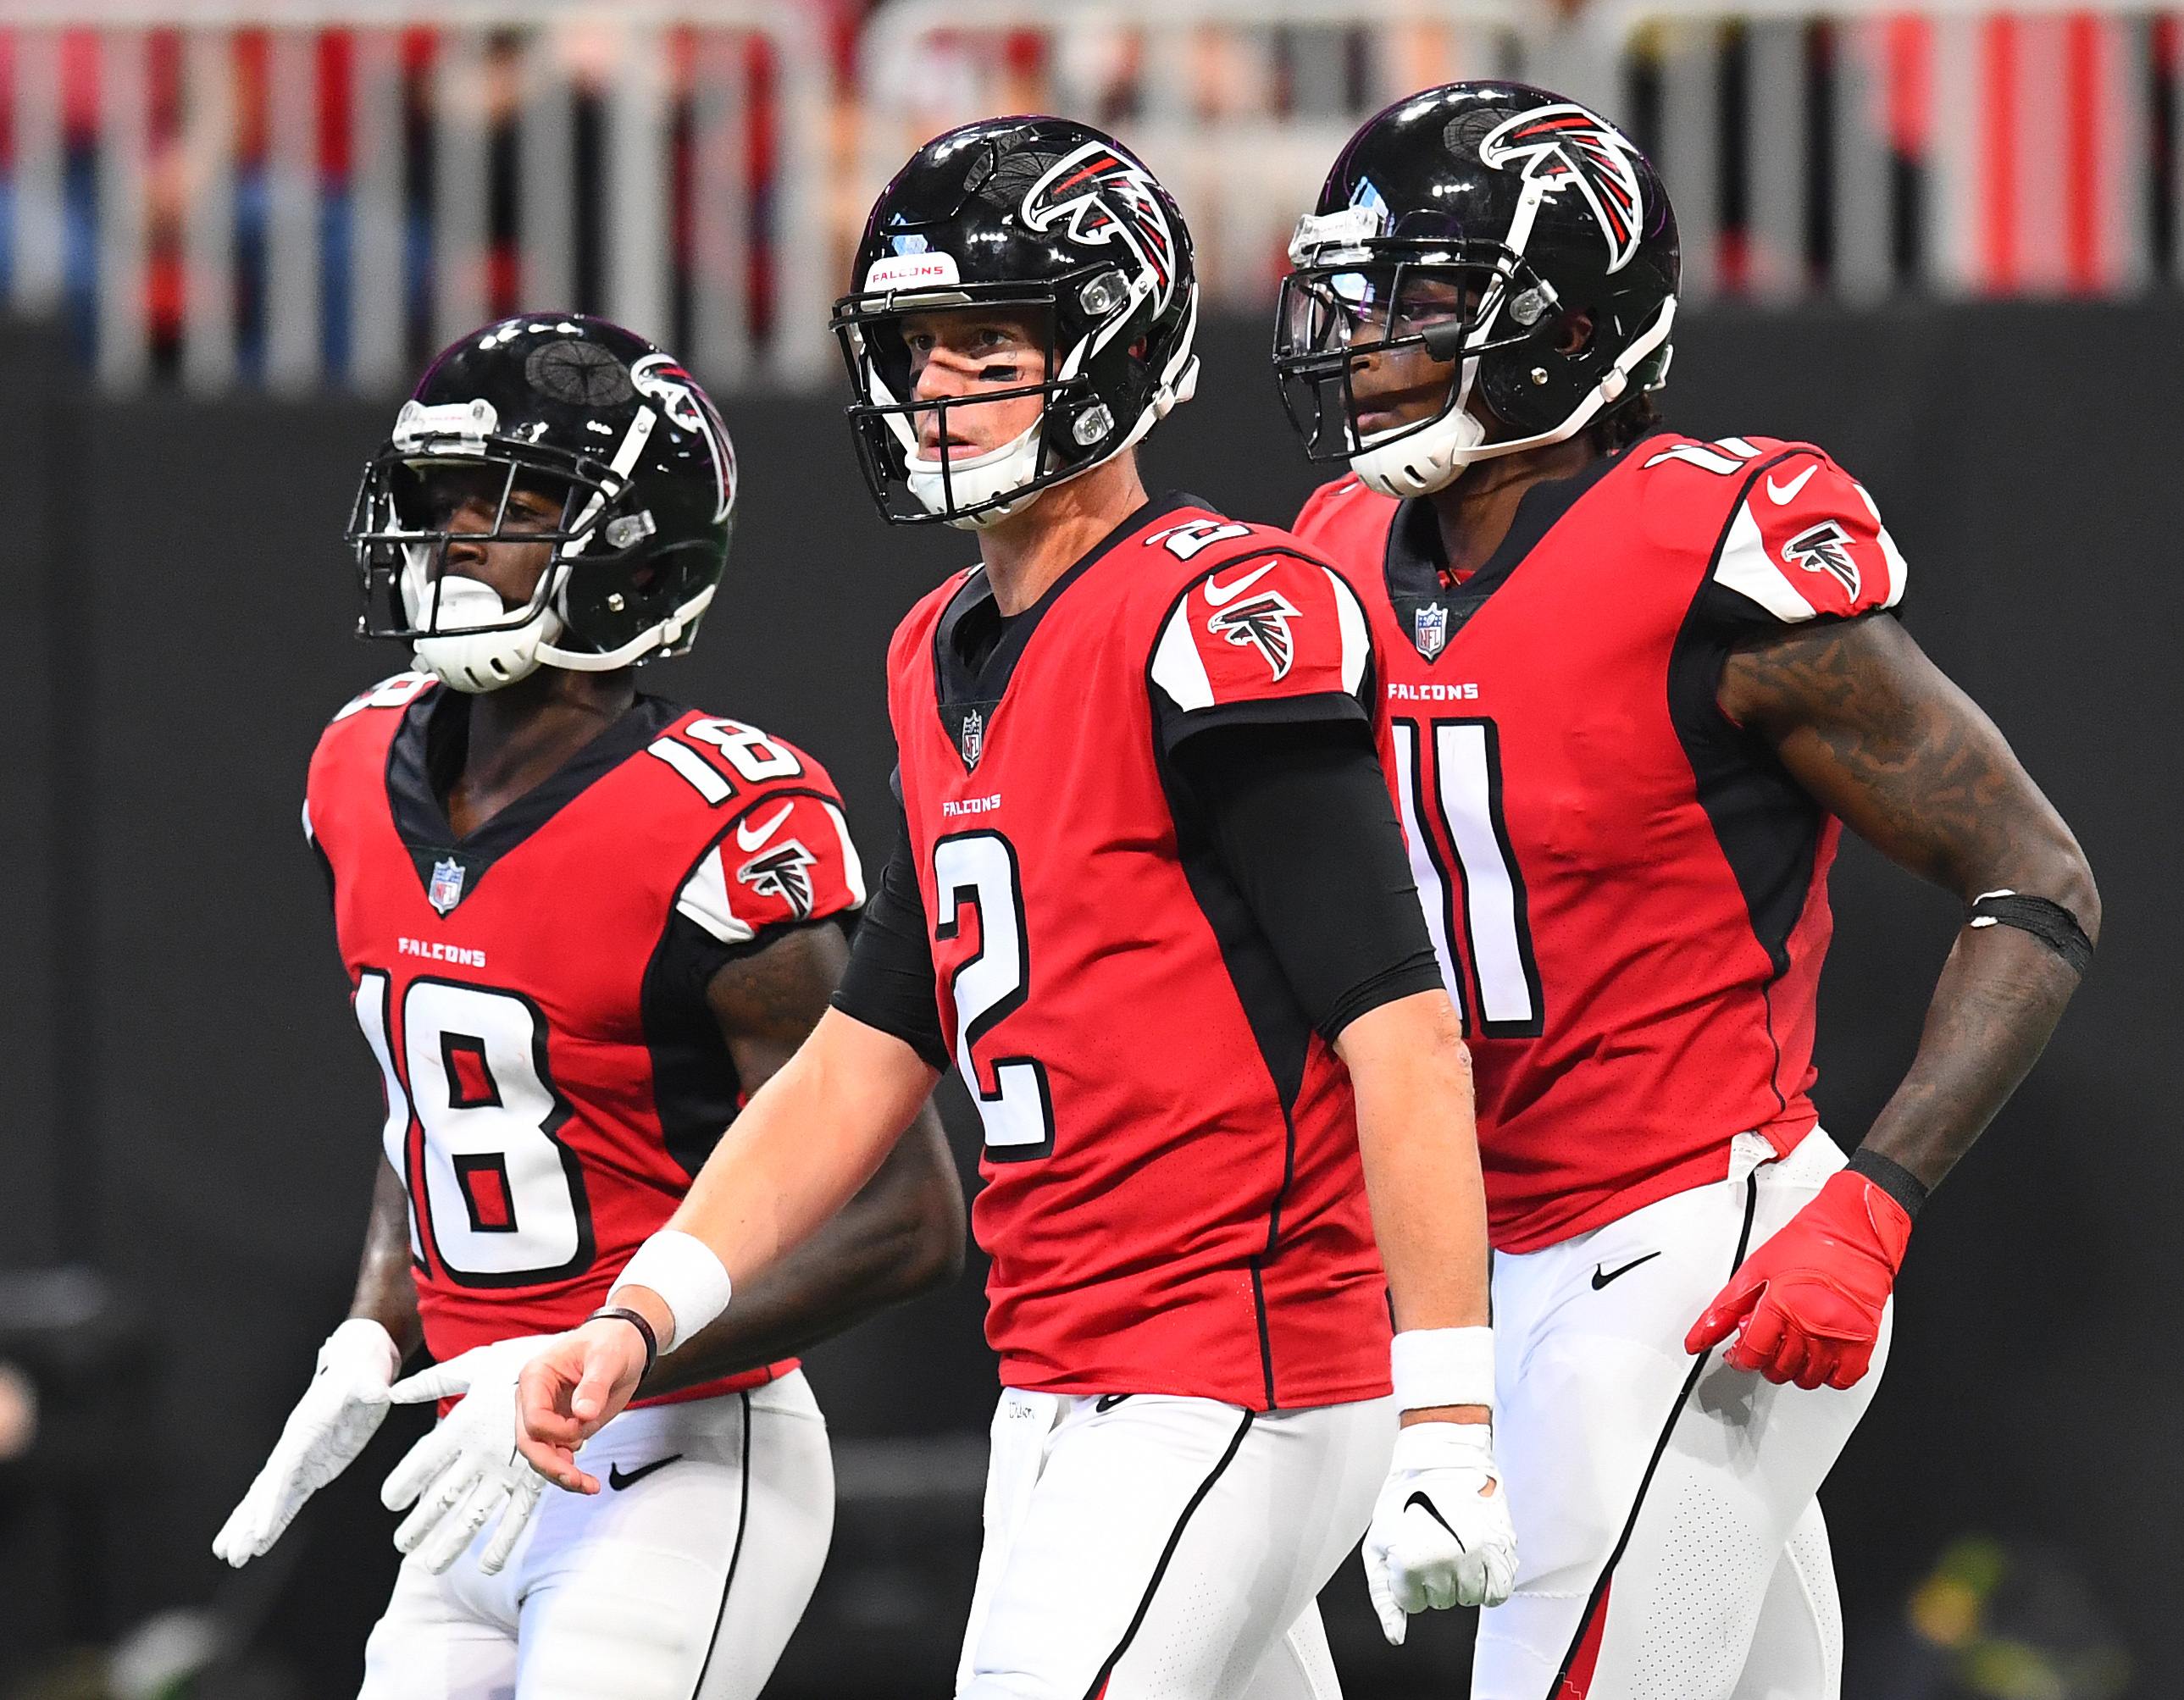 Calvin Ridley #18, Matt Ryan #2, and Julio Jones #11 of the Atlanta Falcons take the field during the second quarter against the New Orleans Saints at Mercedes-Benz Stadium on September 23, 2018 in Atlanta, Georgia.